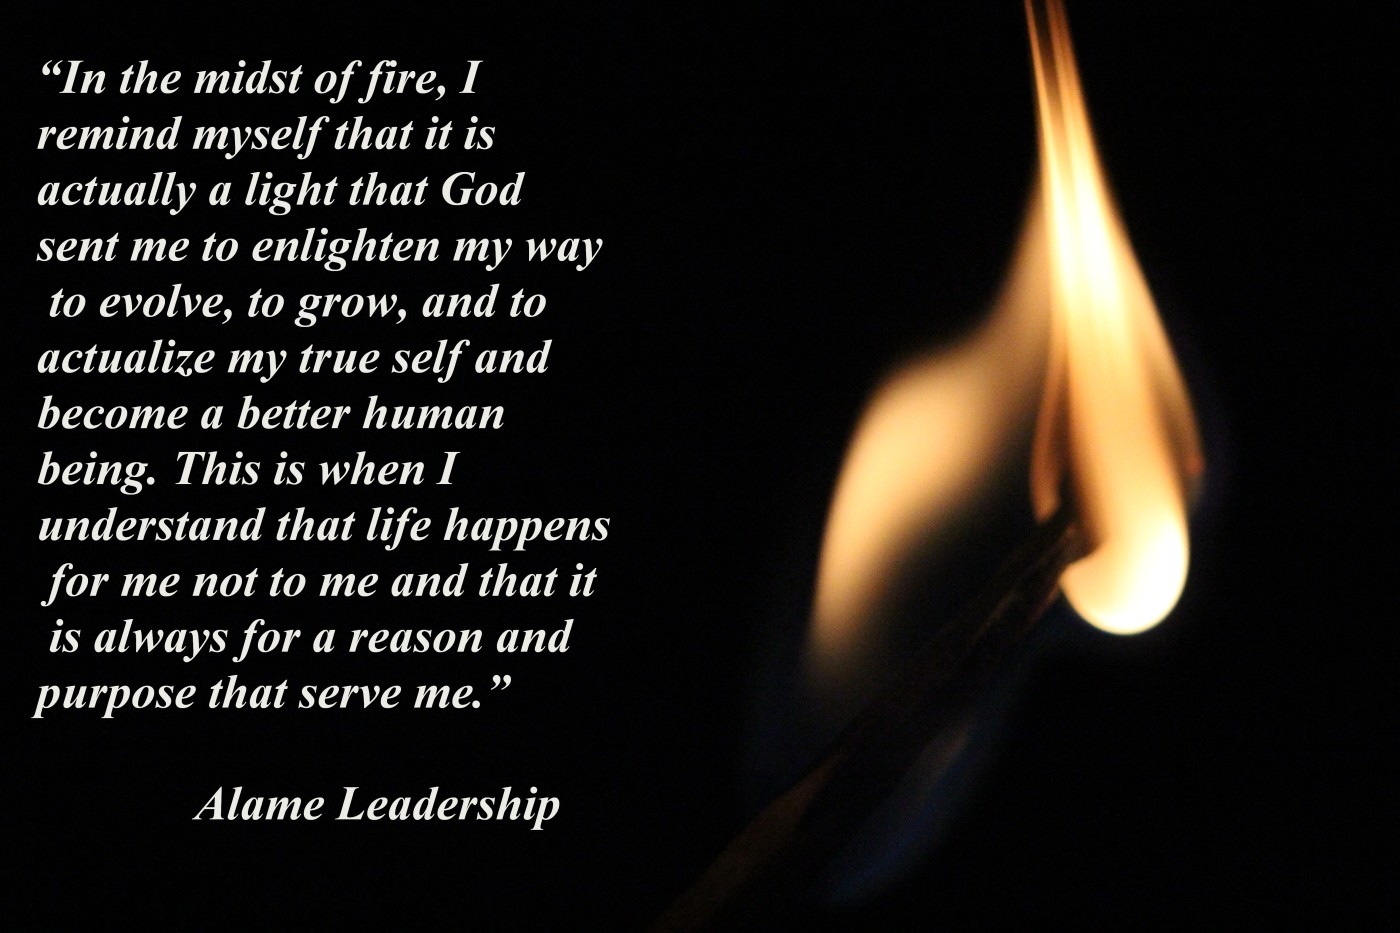 Quote For Life Al Inspiring Quote On Challenges In Life  Alame Leadership